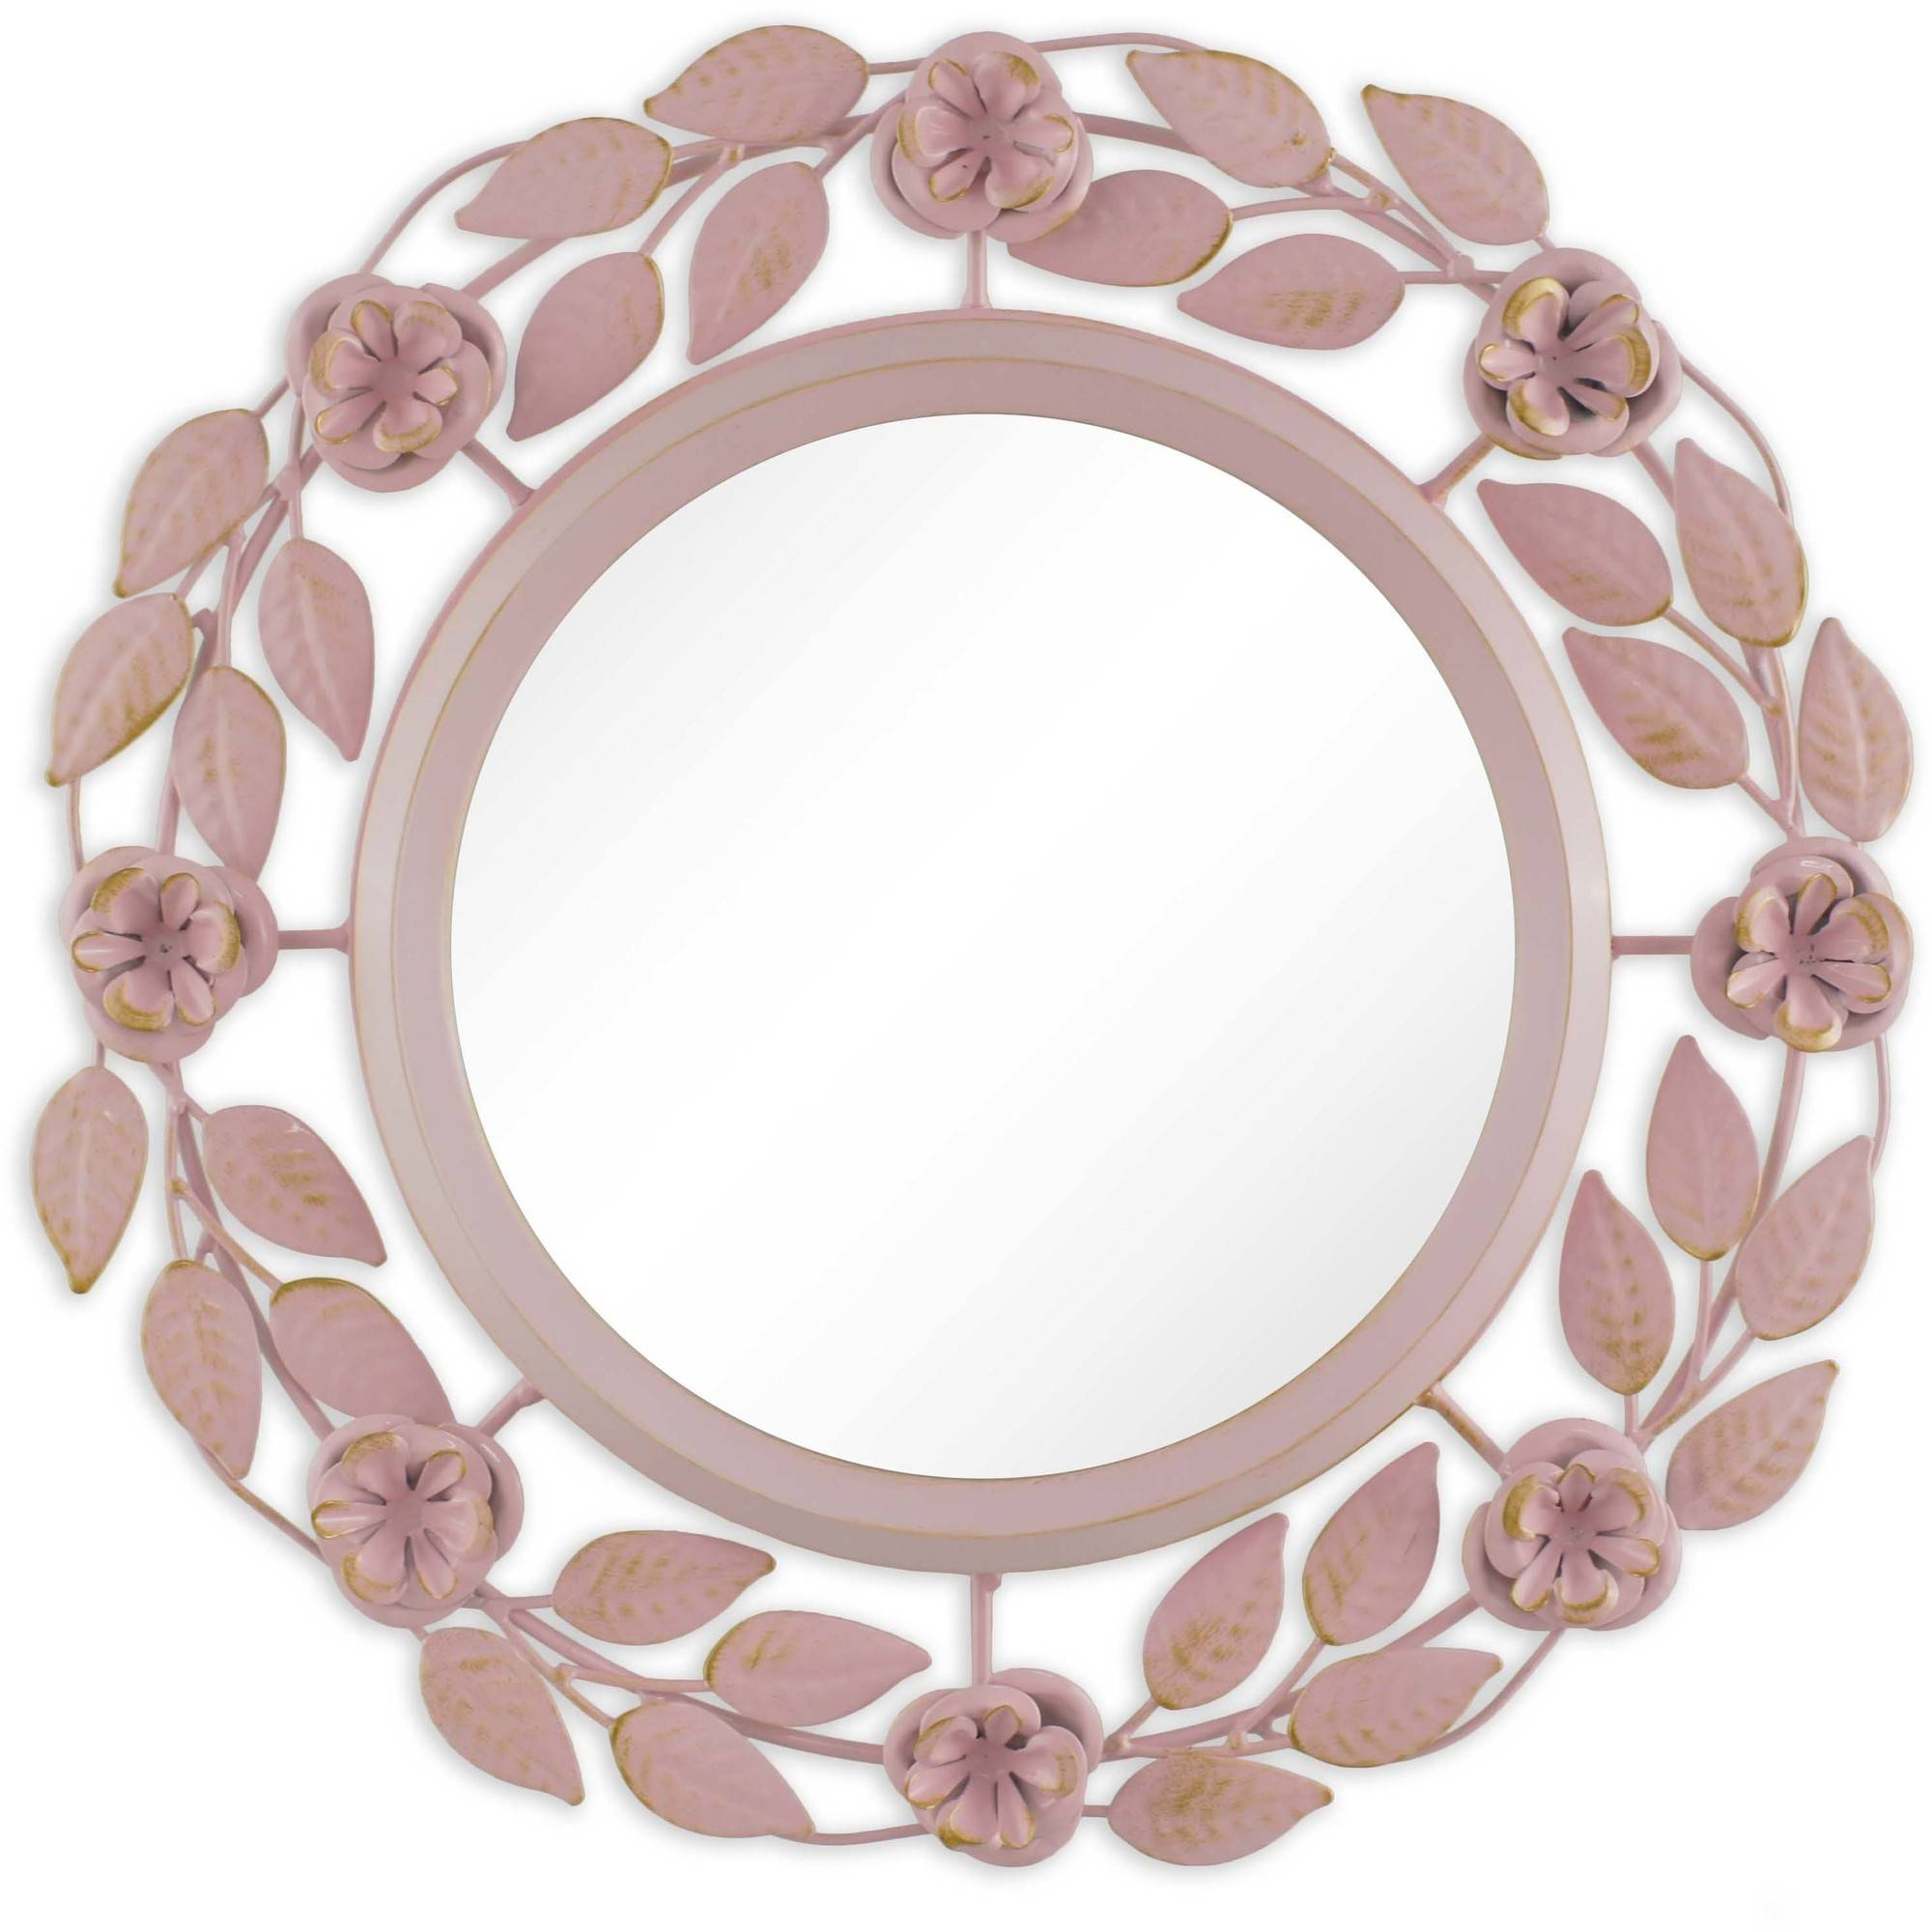 "Better Homes and Gardens 14"" (35.56 cm) Floral Wreath Metal Mirror by"